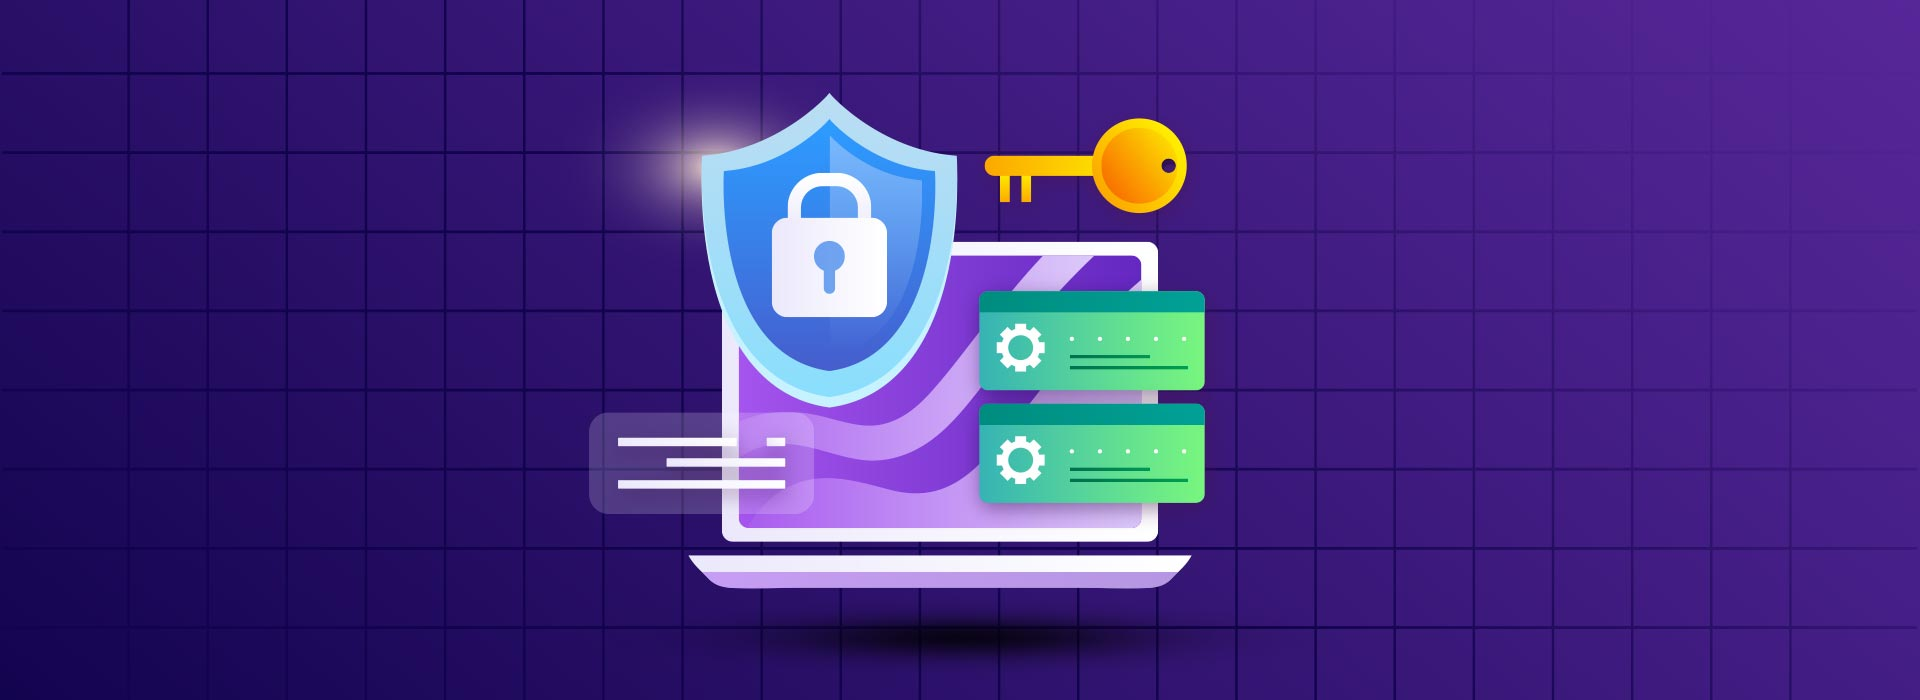 Best Practices for Enterprise Digital Security